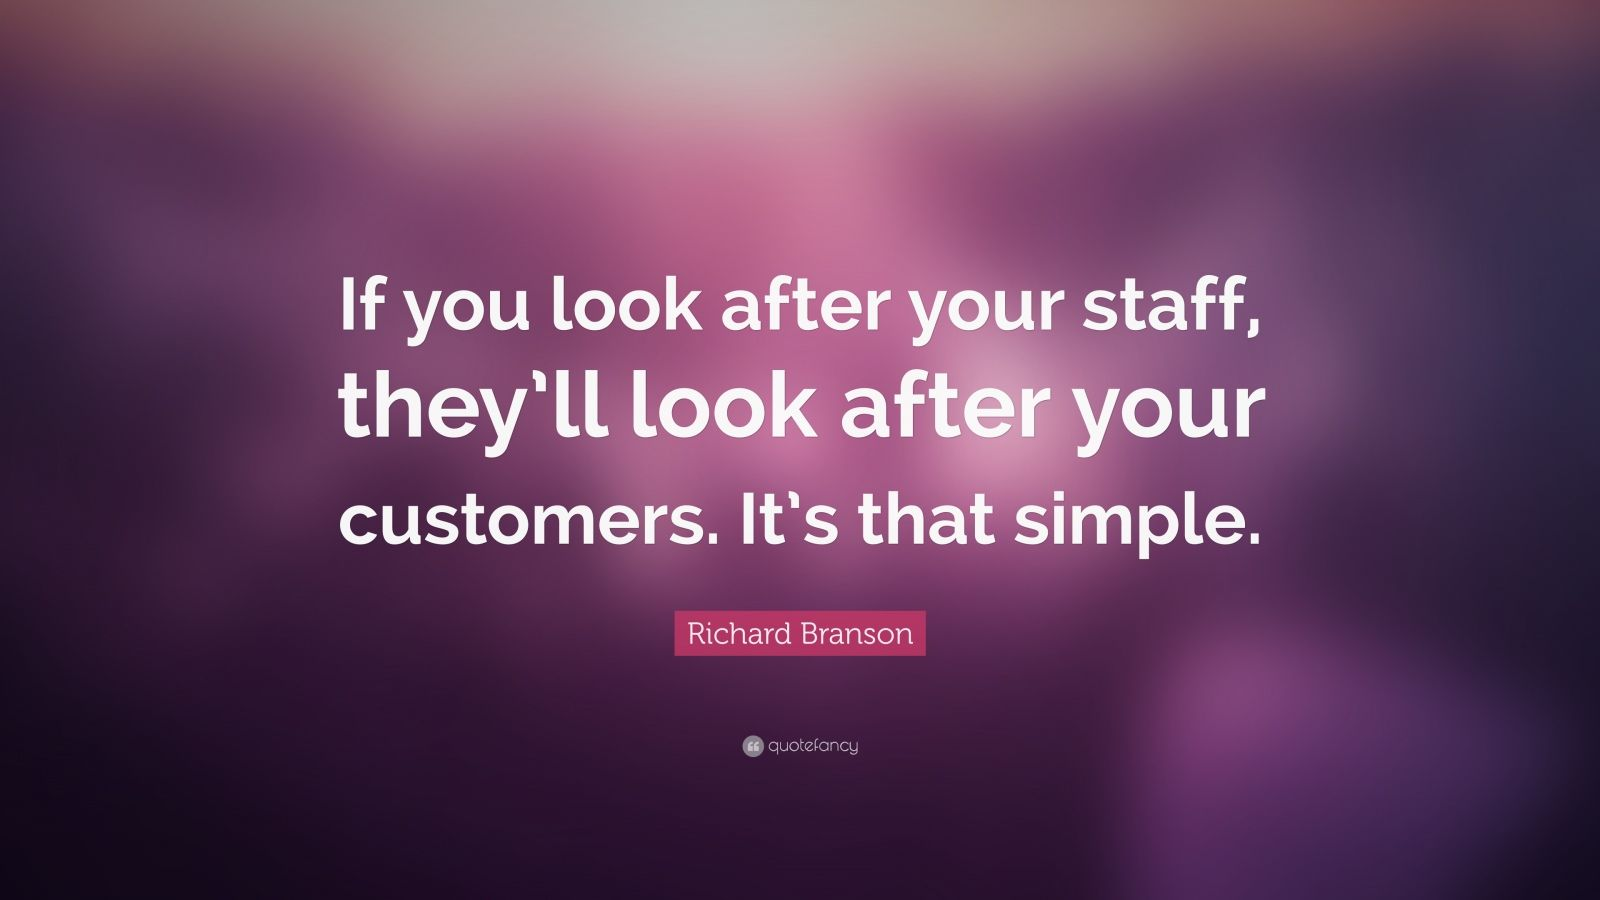 """Richard Branson Quote: """"If you look after your staff, they'll look after your customers. It's that simple."""""""